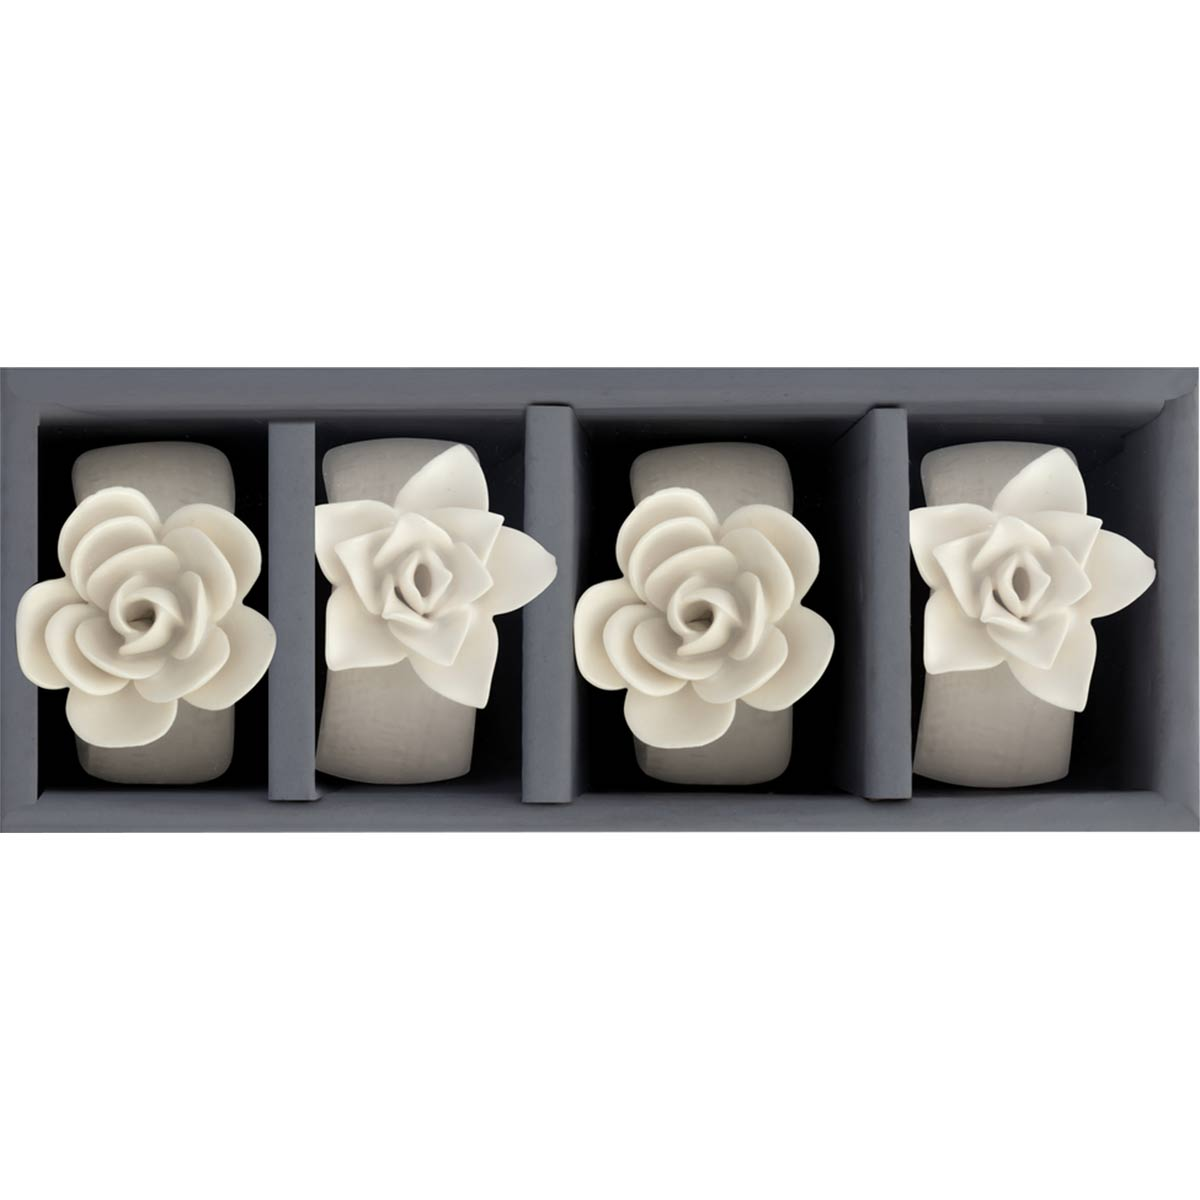 Simple Succulent Napkin Rings - Set of 4